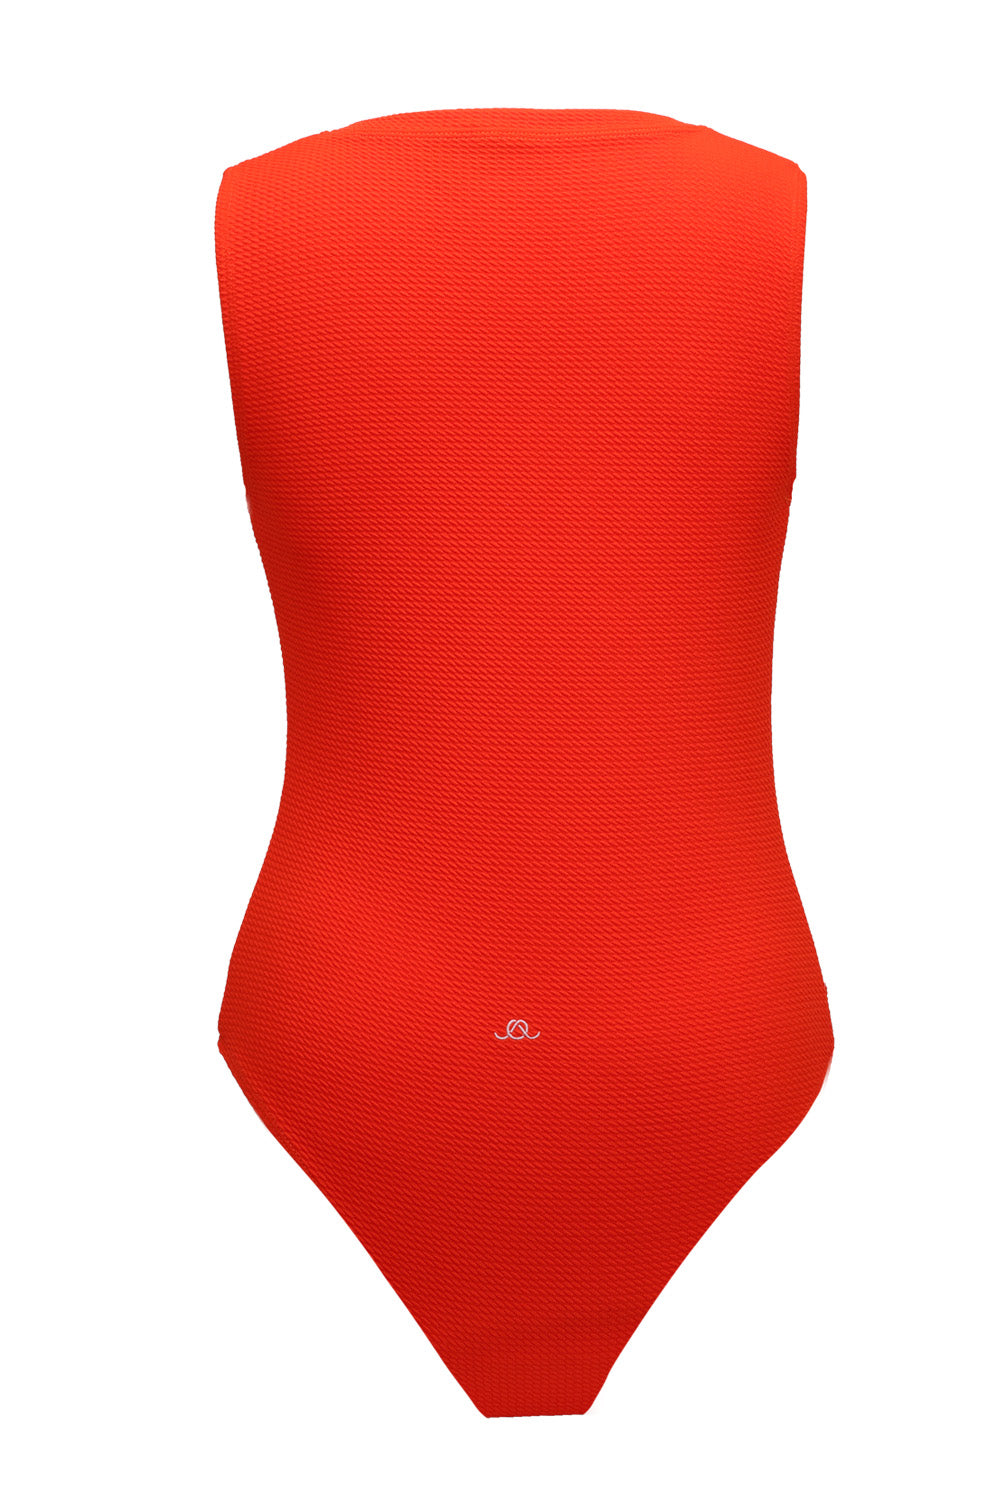 The Blood Orange Poppy Waffle One-Piece